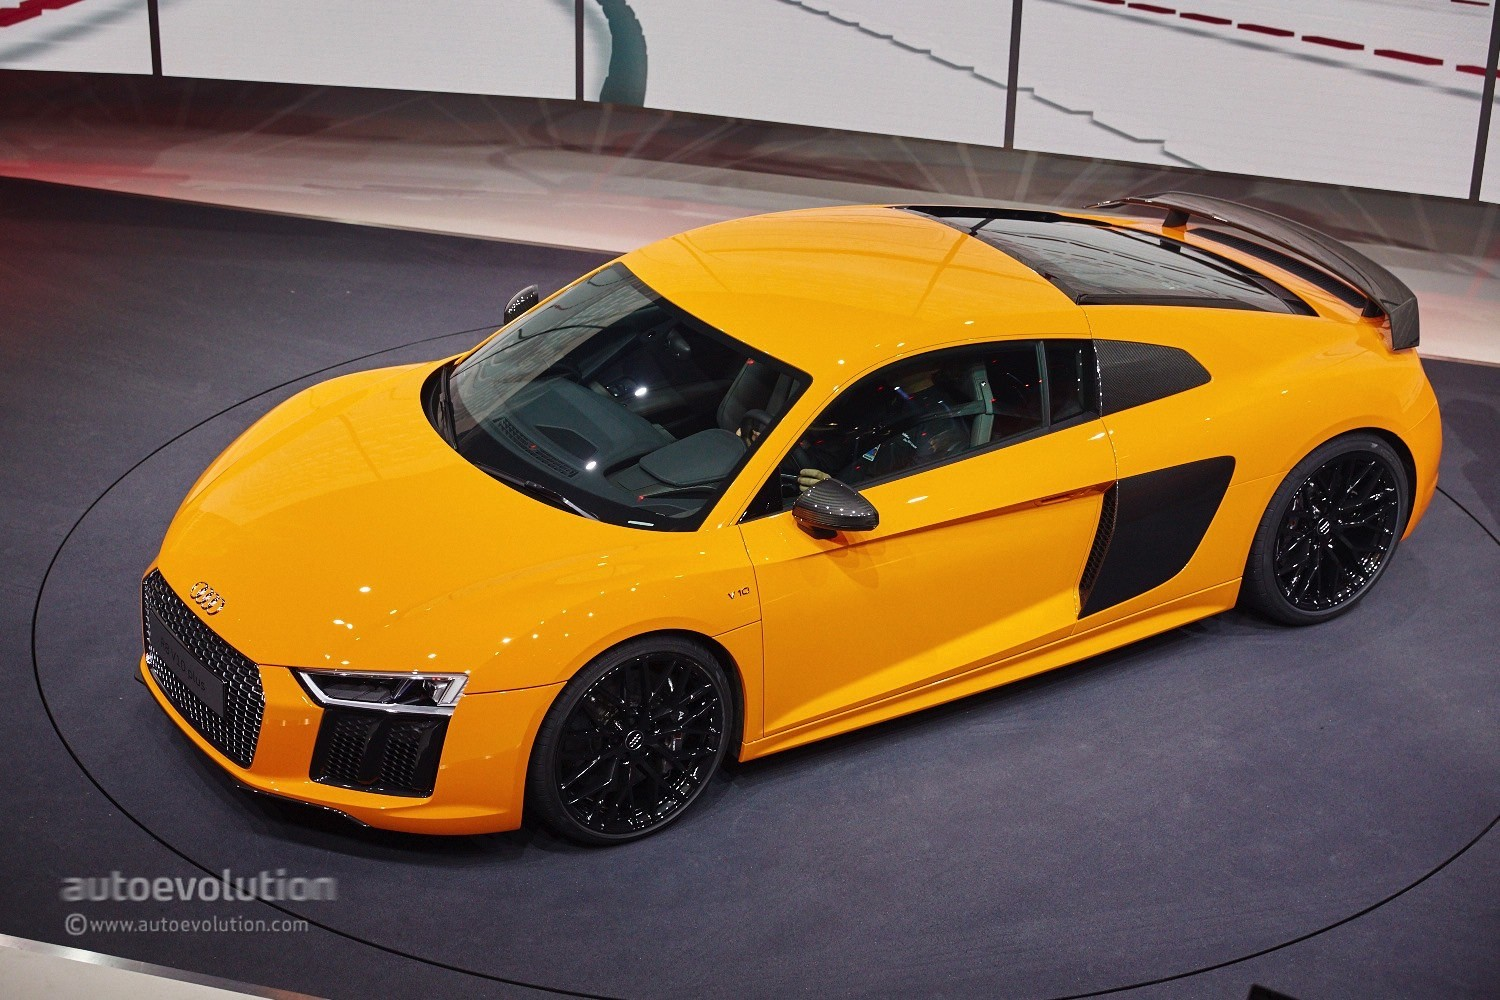 audi r8 base model might get turbocharged v6 instead of 2. Black Bedroom Furniture Sets. Home Design Ideas